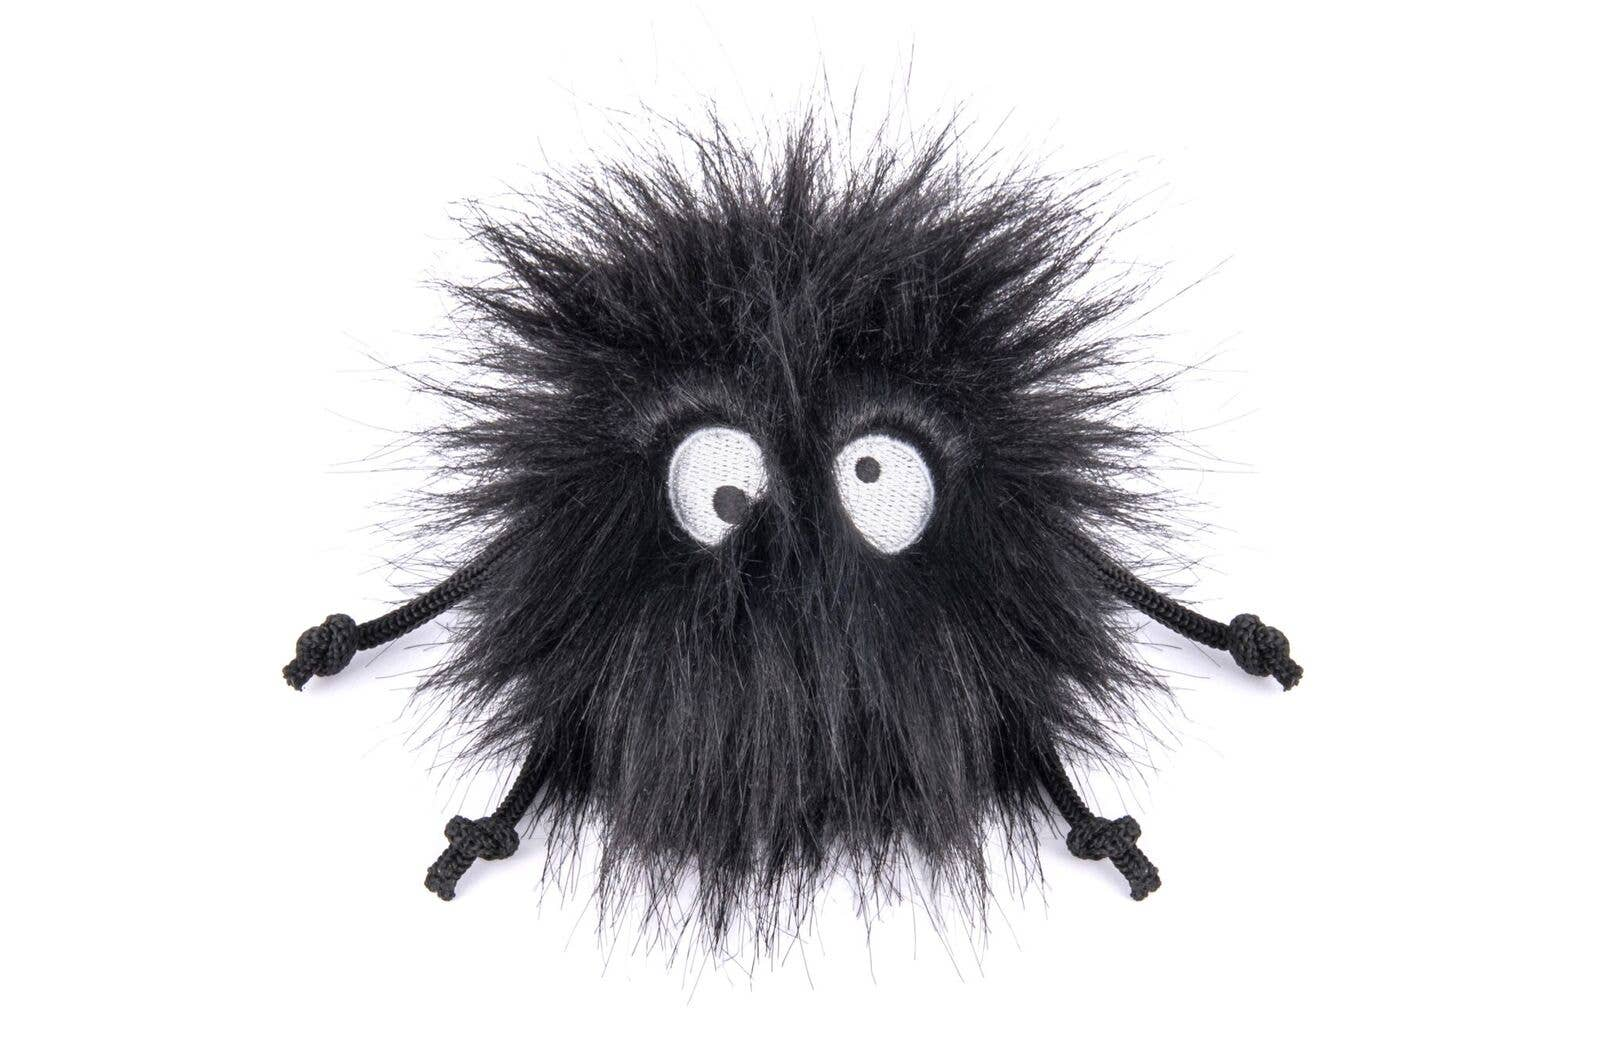 Soot Sprite Furry Pet Toy